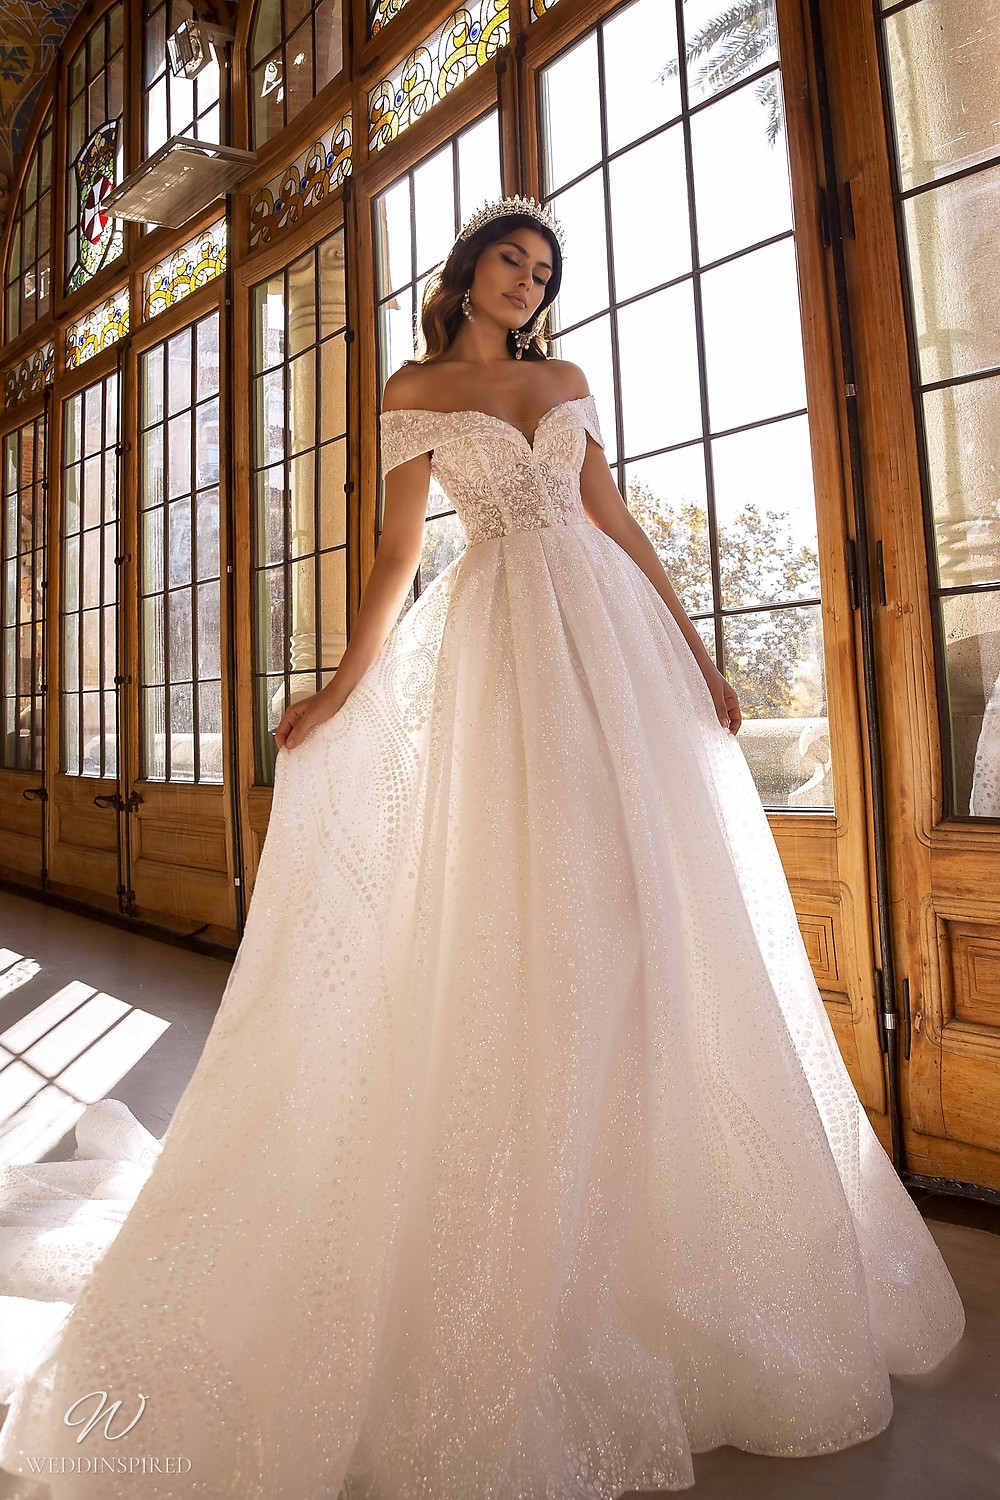 A Maks Mariano ivory off the shoulder sparkle princess ball gown wedding dress